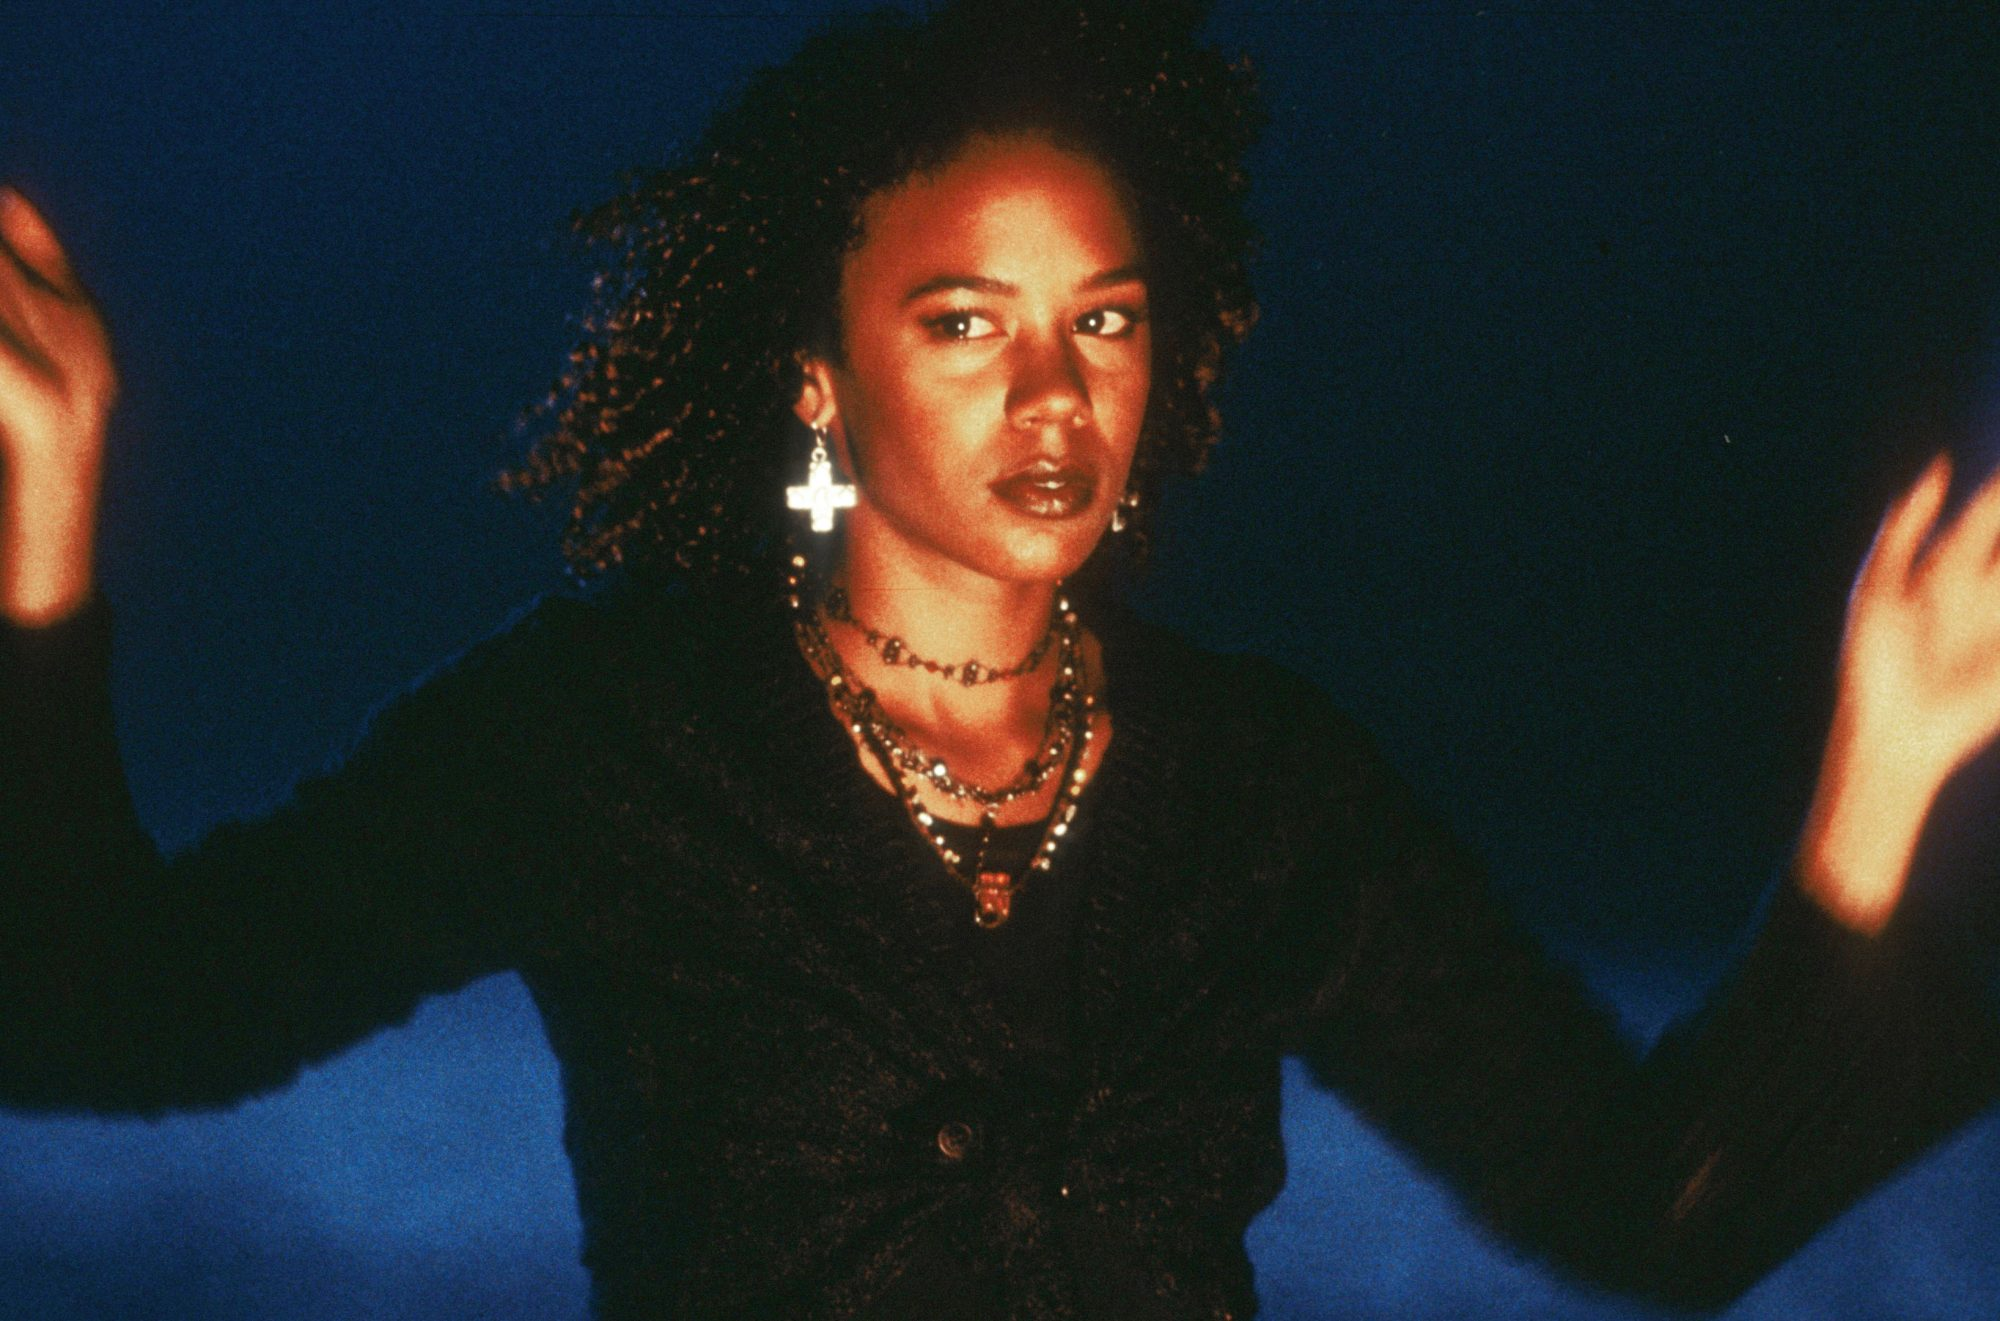 Rochelle from The Craft